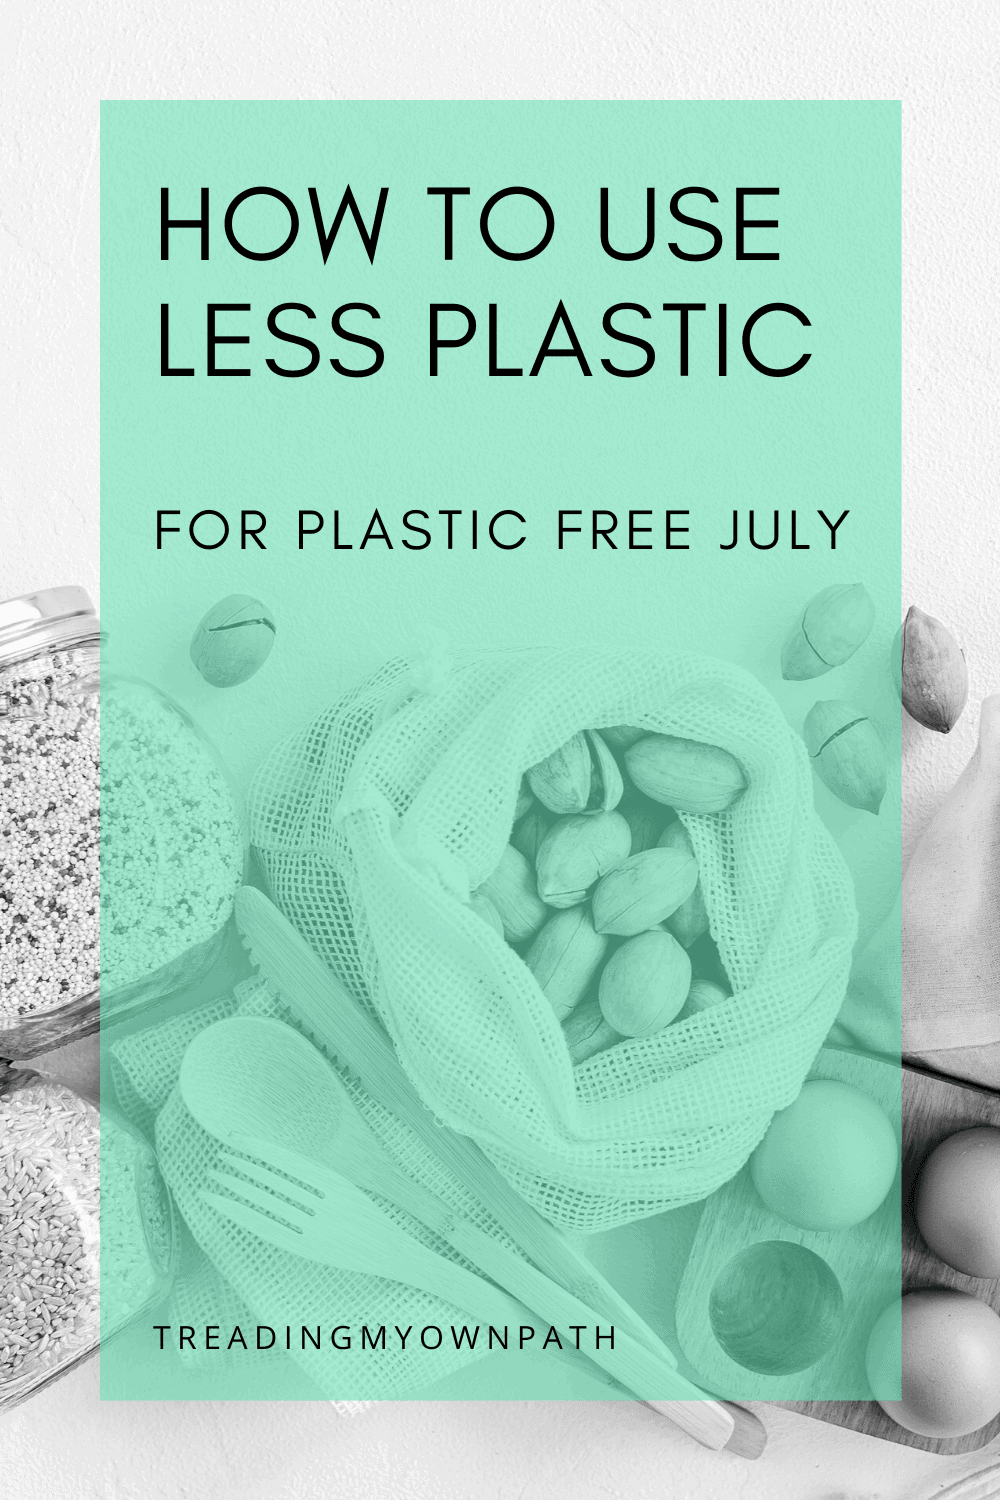 37 ways to use less plastic in 2021